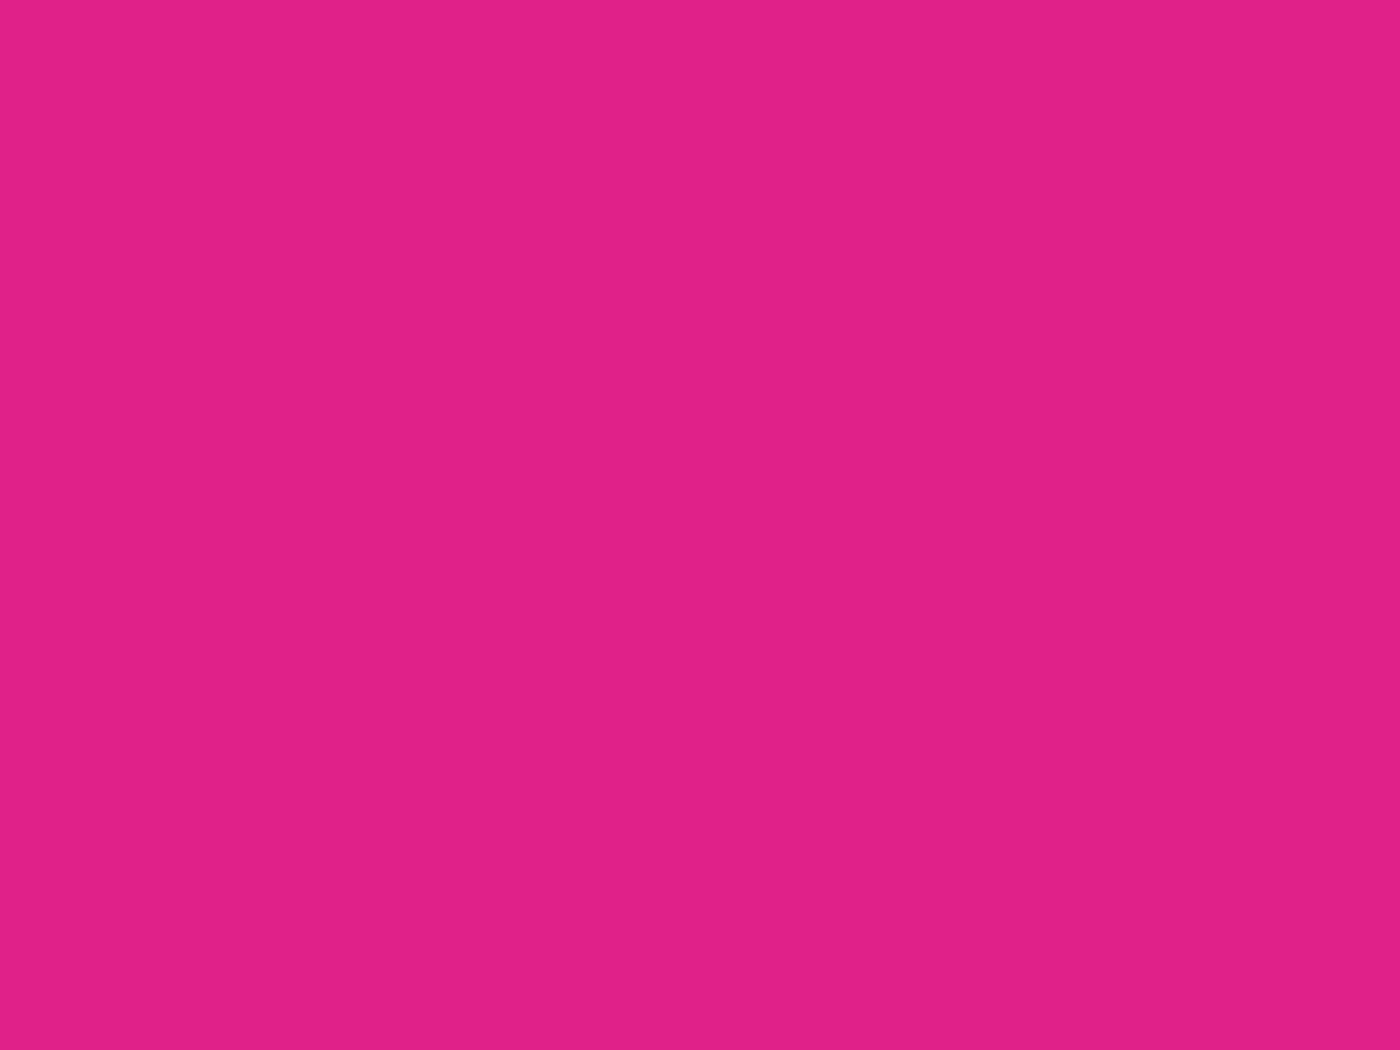 1400x1050 Barbie Pink Solid Color Background